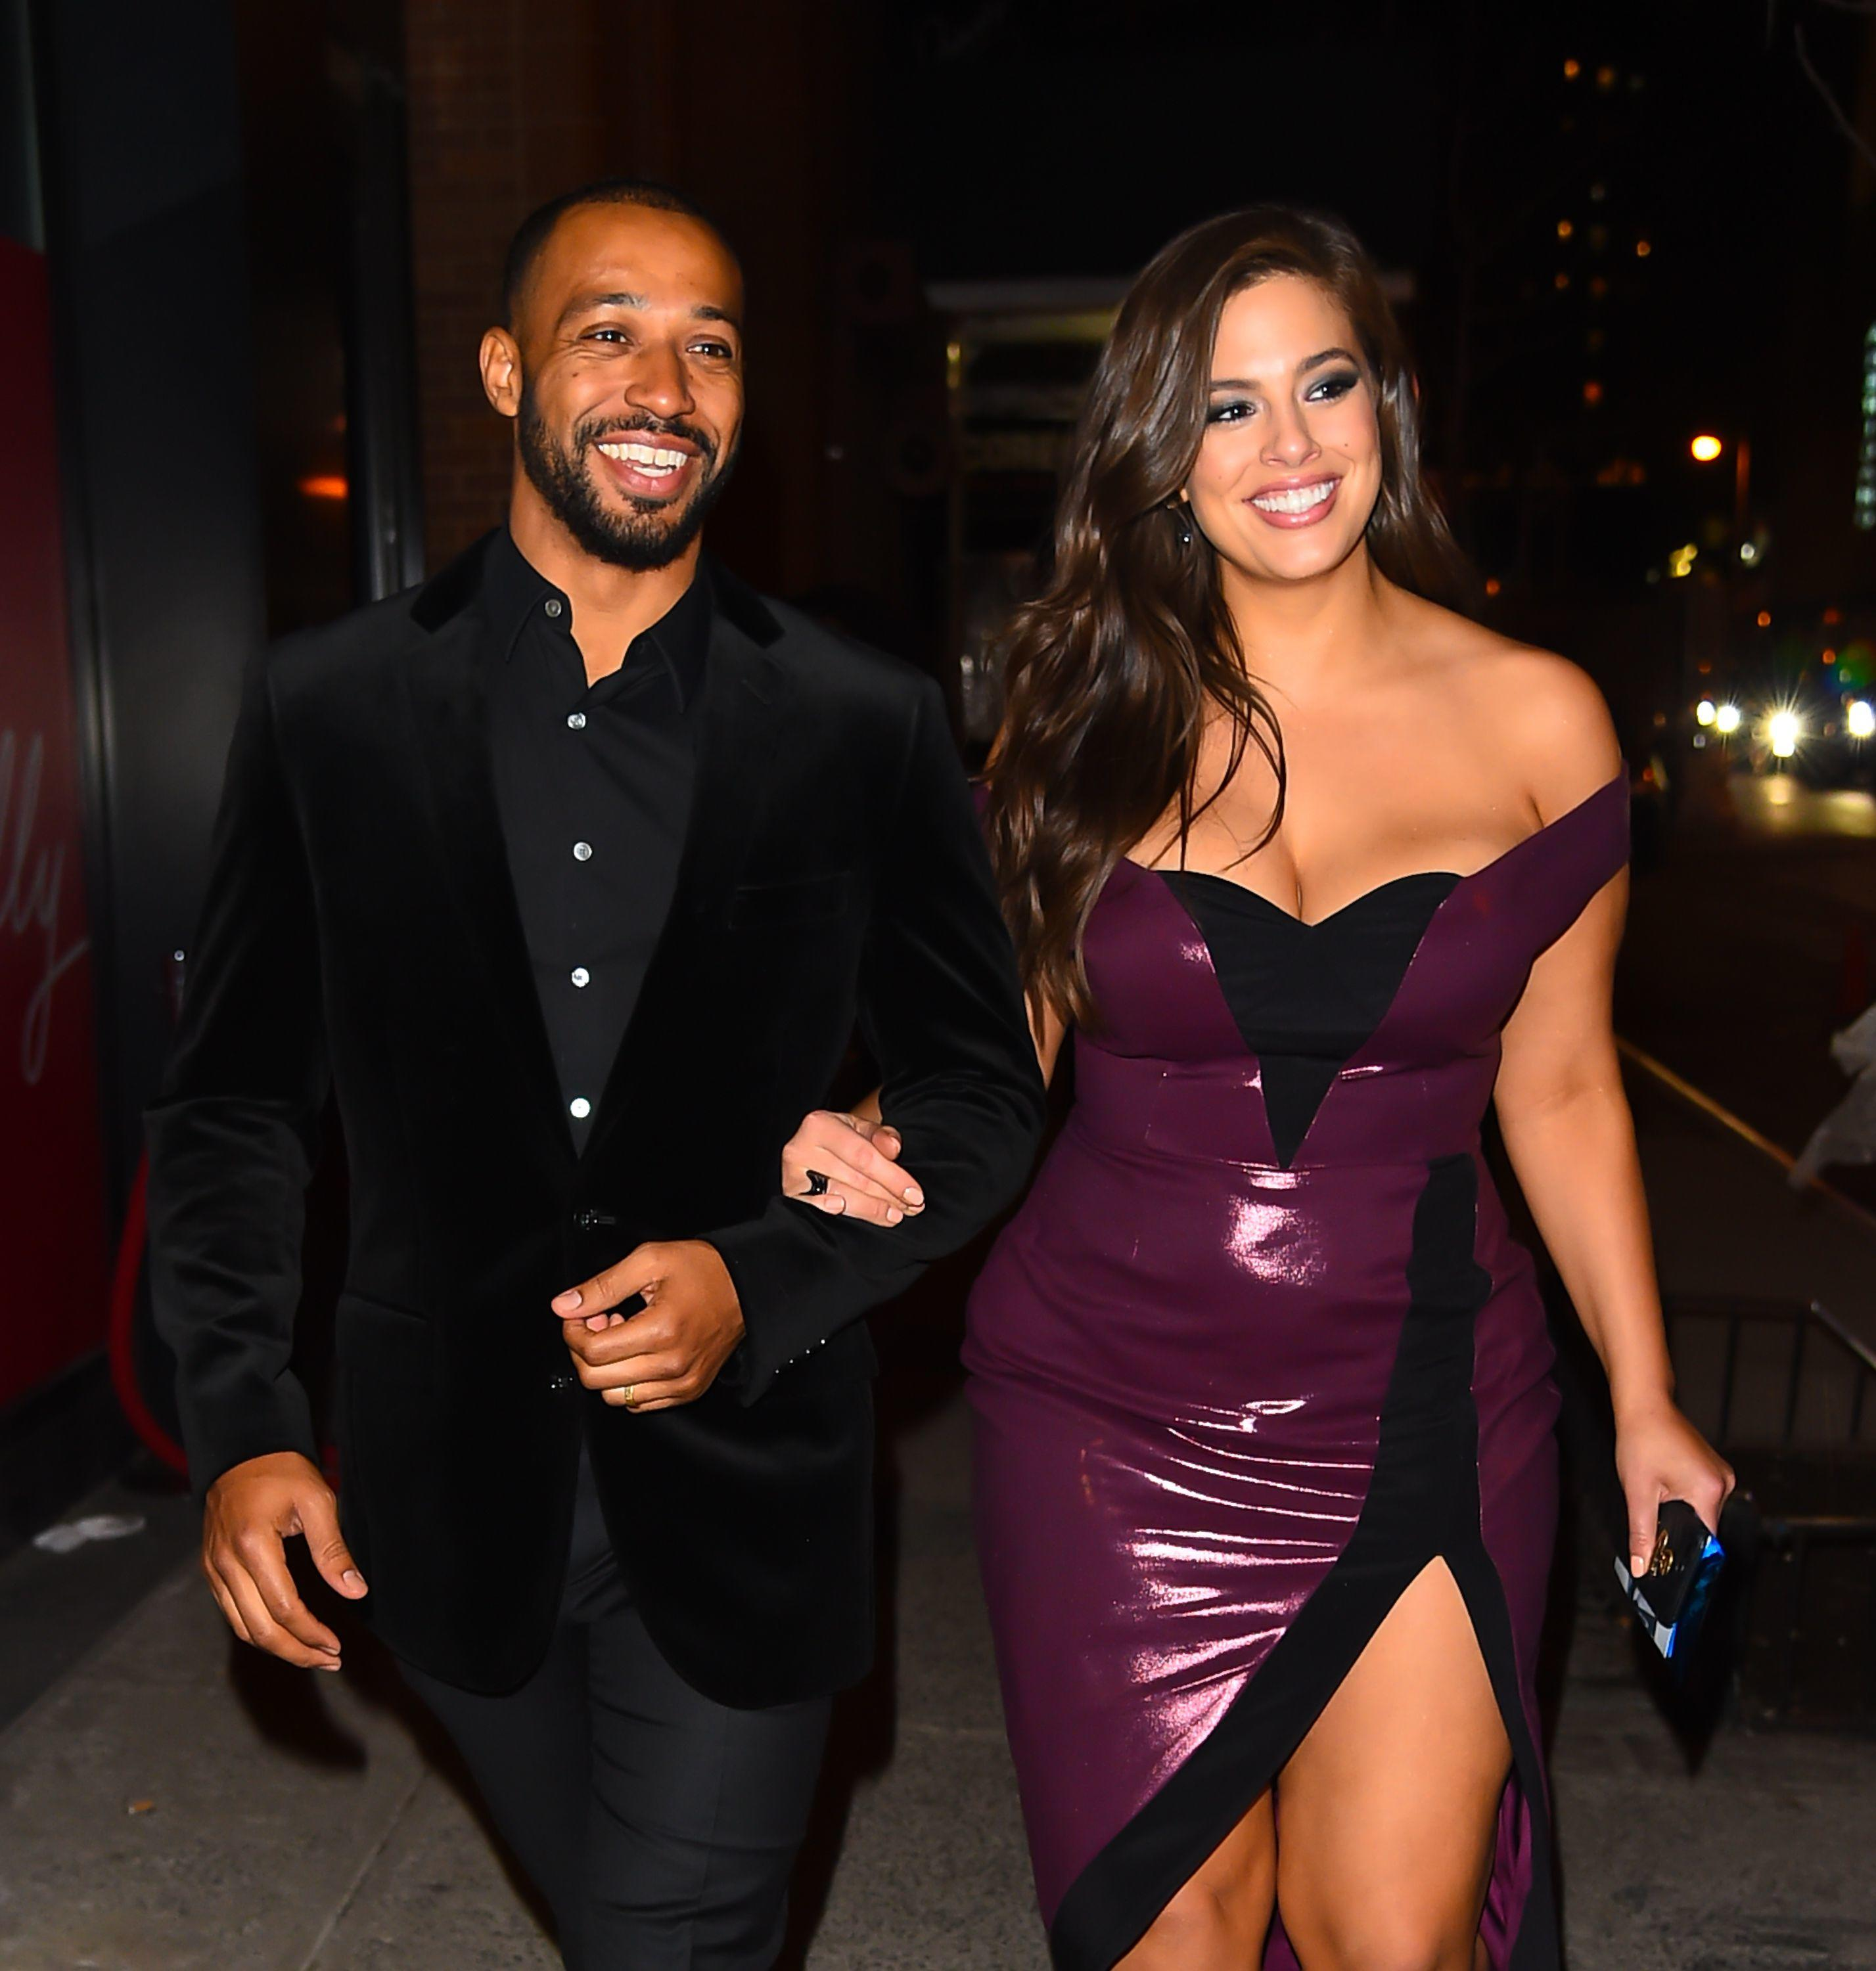 ashley-graham-is-seen-with-husband-justin-ervin-on-january-news-photo-909940194-1538076383